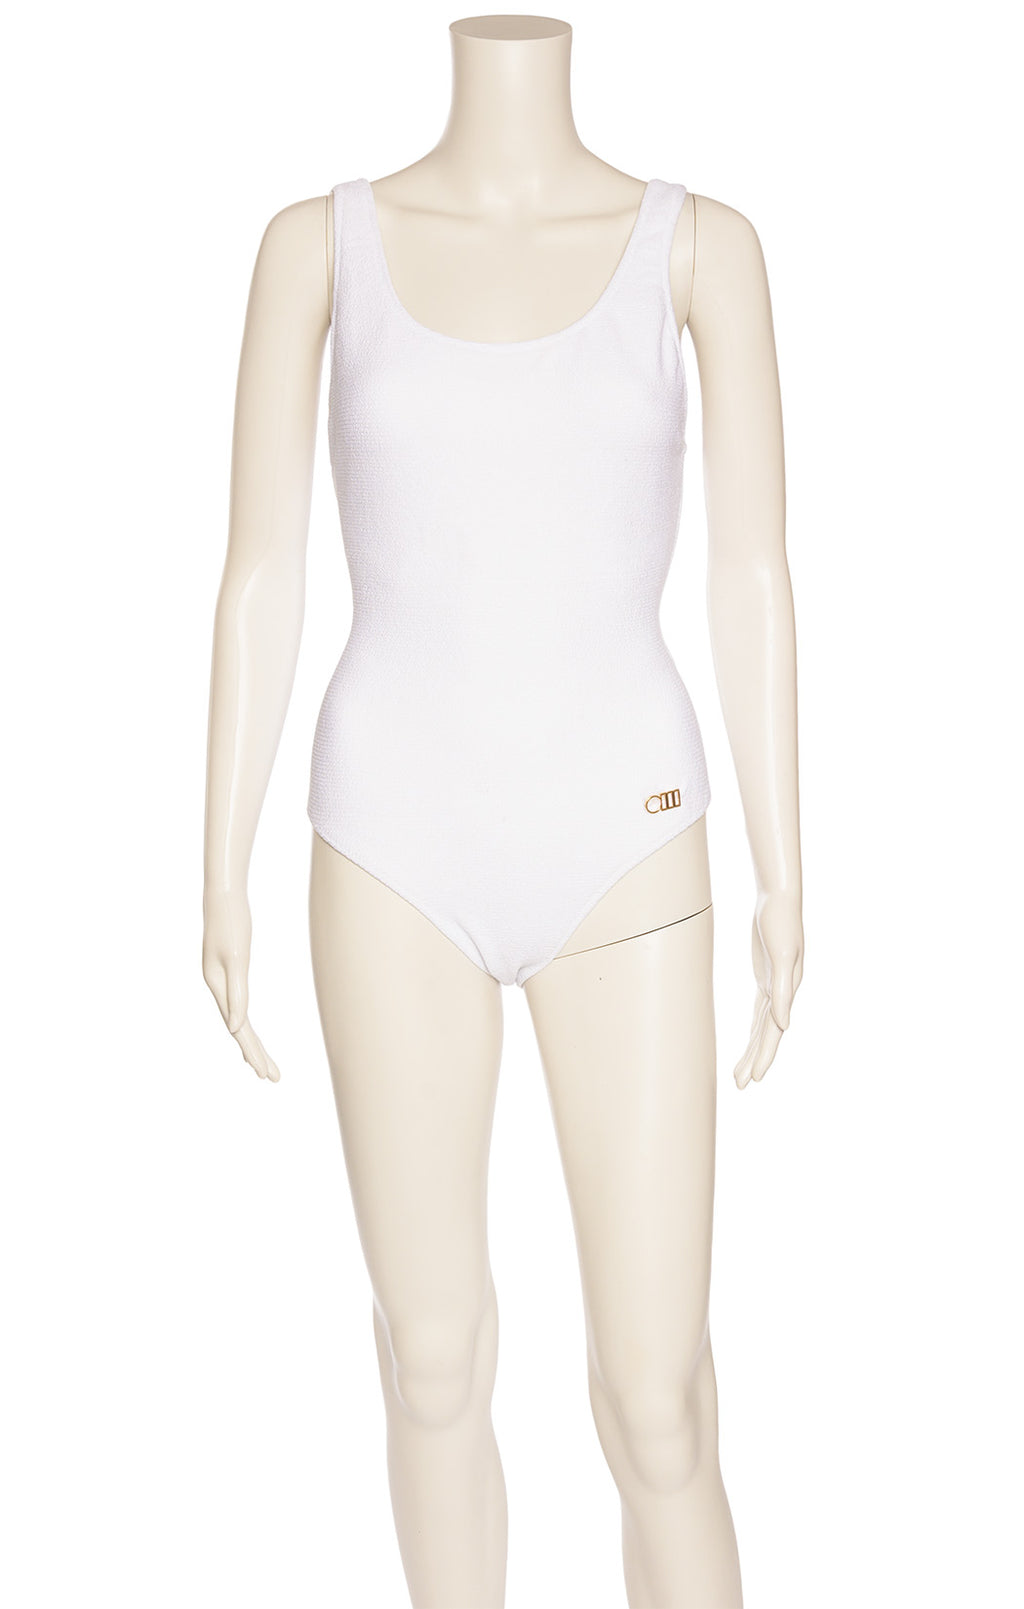 White one piece textured fabric bathing suit